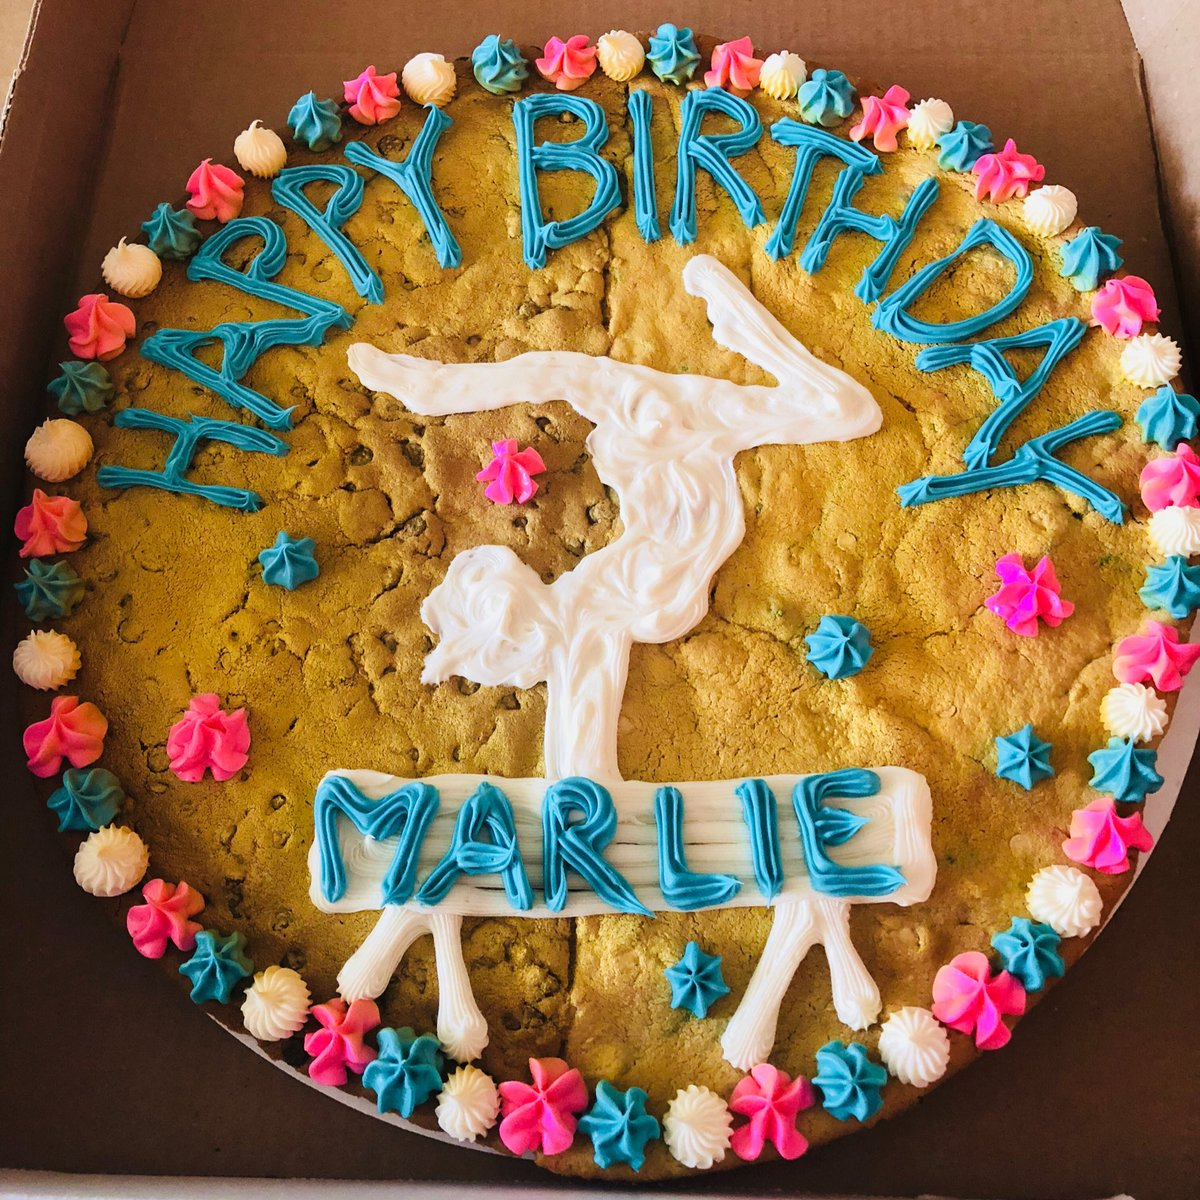 Groovy Shugs On Twitter What A Cute Cookie Cake For Sweet Marlie We Funny Birthday Cards Online Alyptdamsfinfo